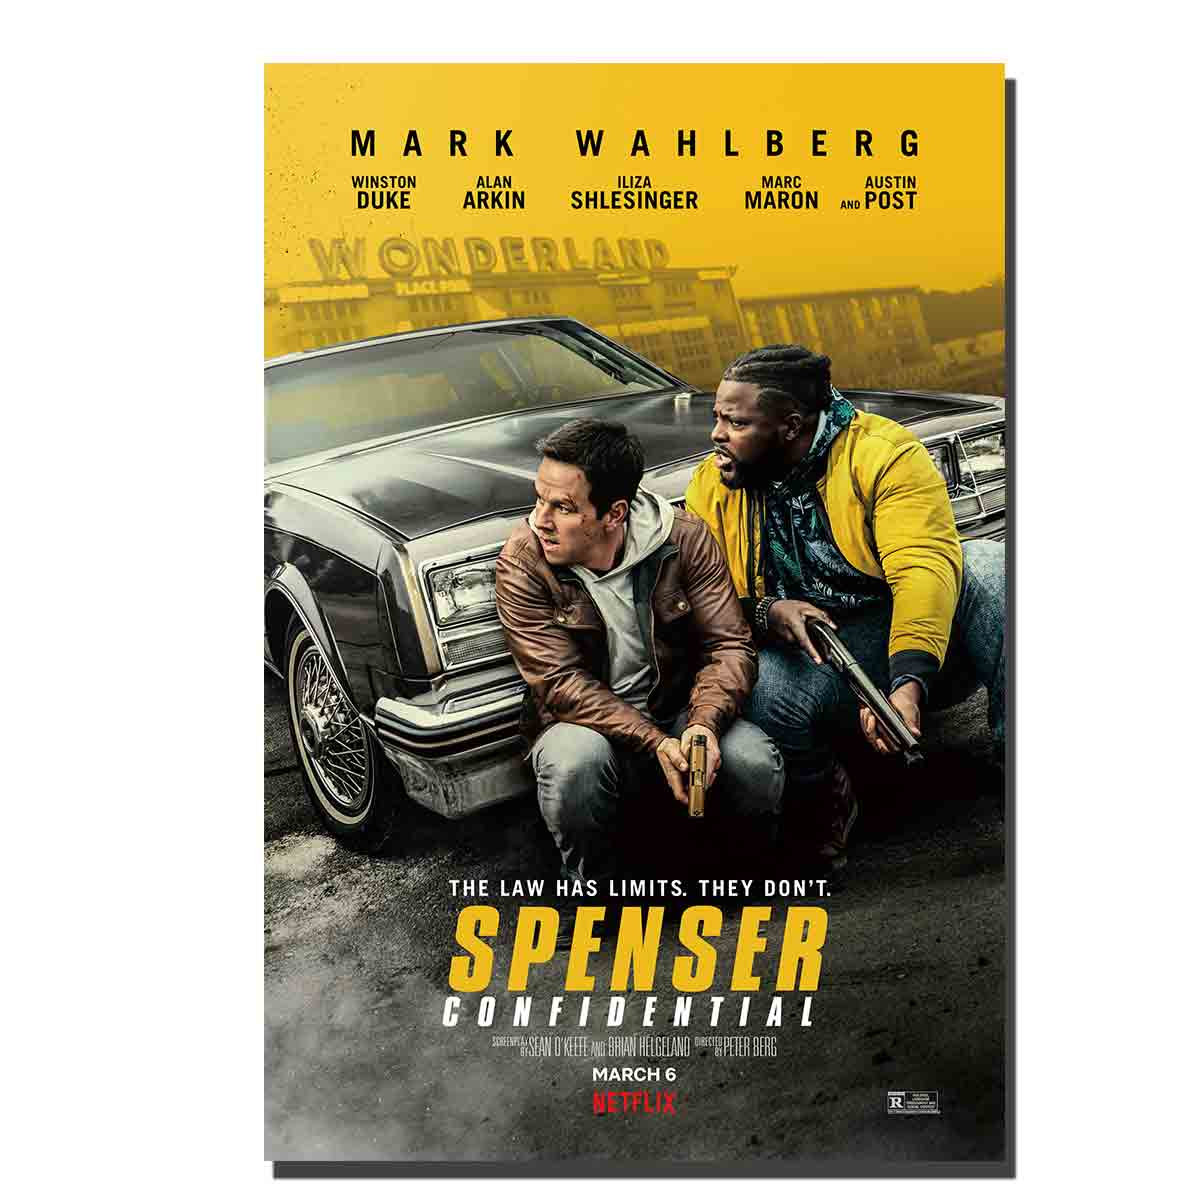 C424 Spenser Confidential Movie Art Posters And Prints Wall Pictures For Living Room 12x18 27x40 8x12 Canvas Painting Aliexpress